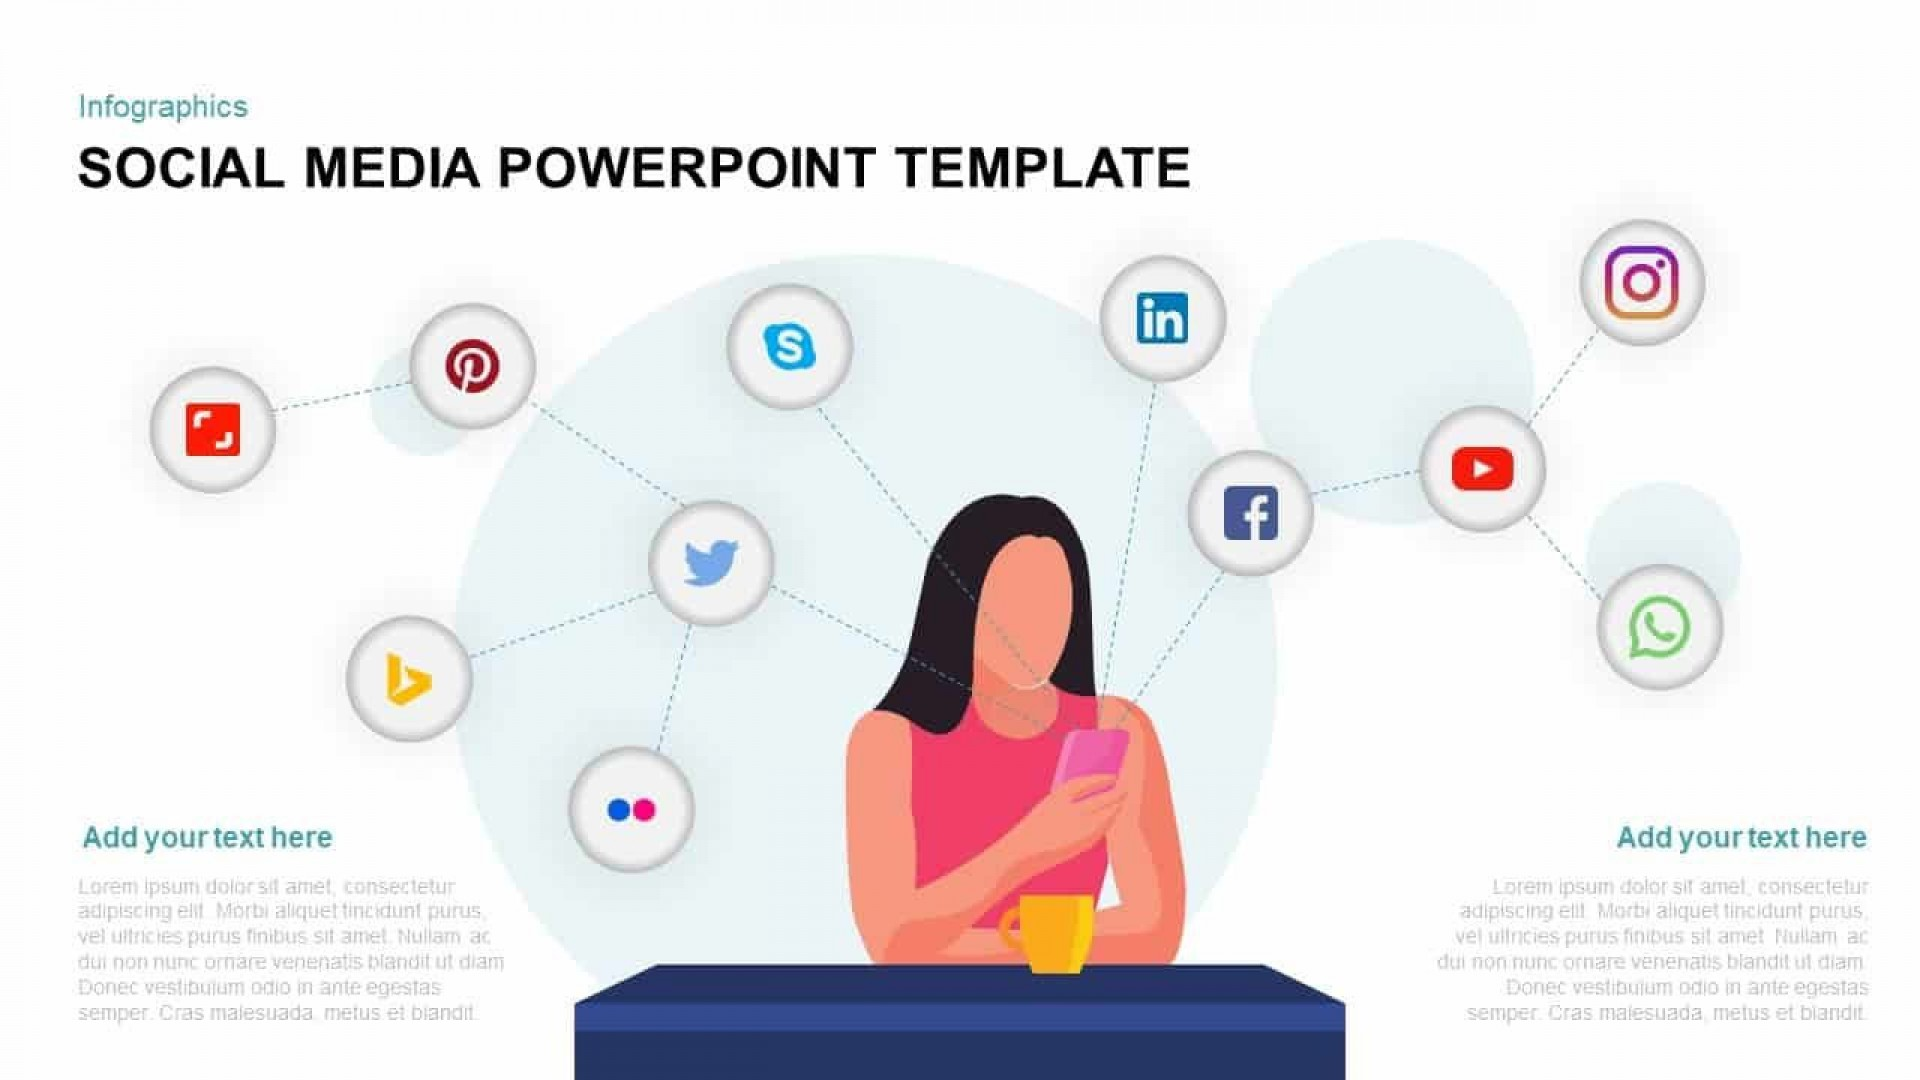 001 Fearsome Social Media Powerpoint Template High Definition  Templates Report Free Social-media-marketing-powerpoint-template1920